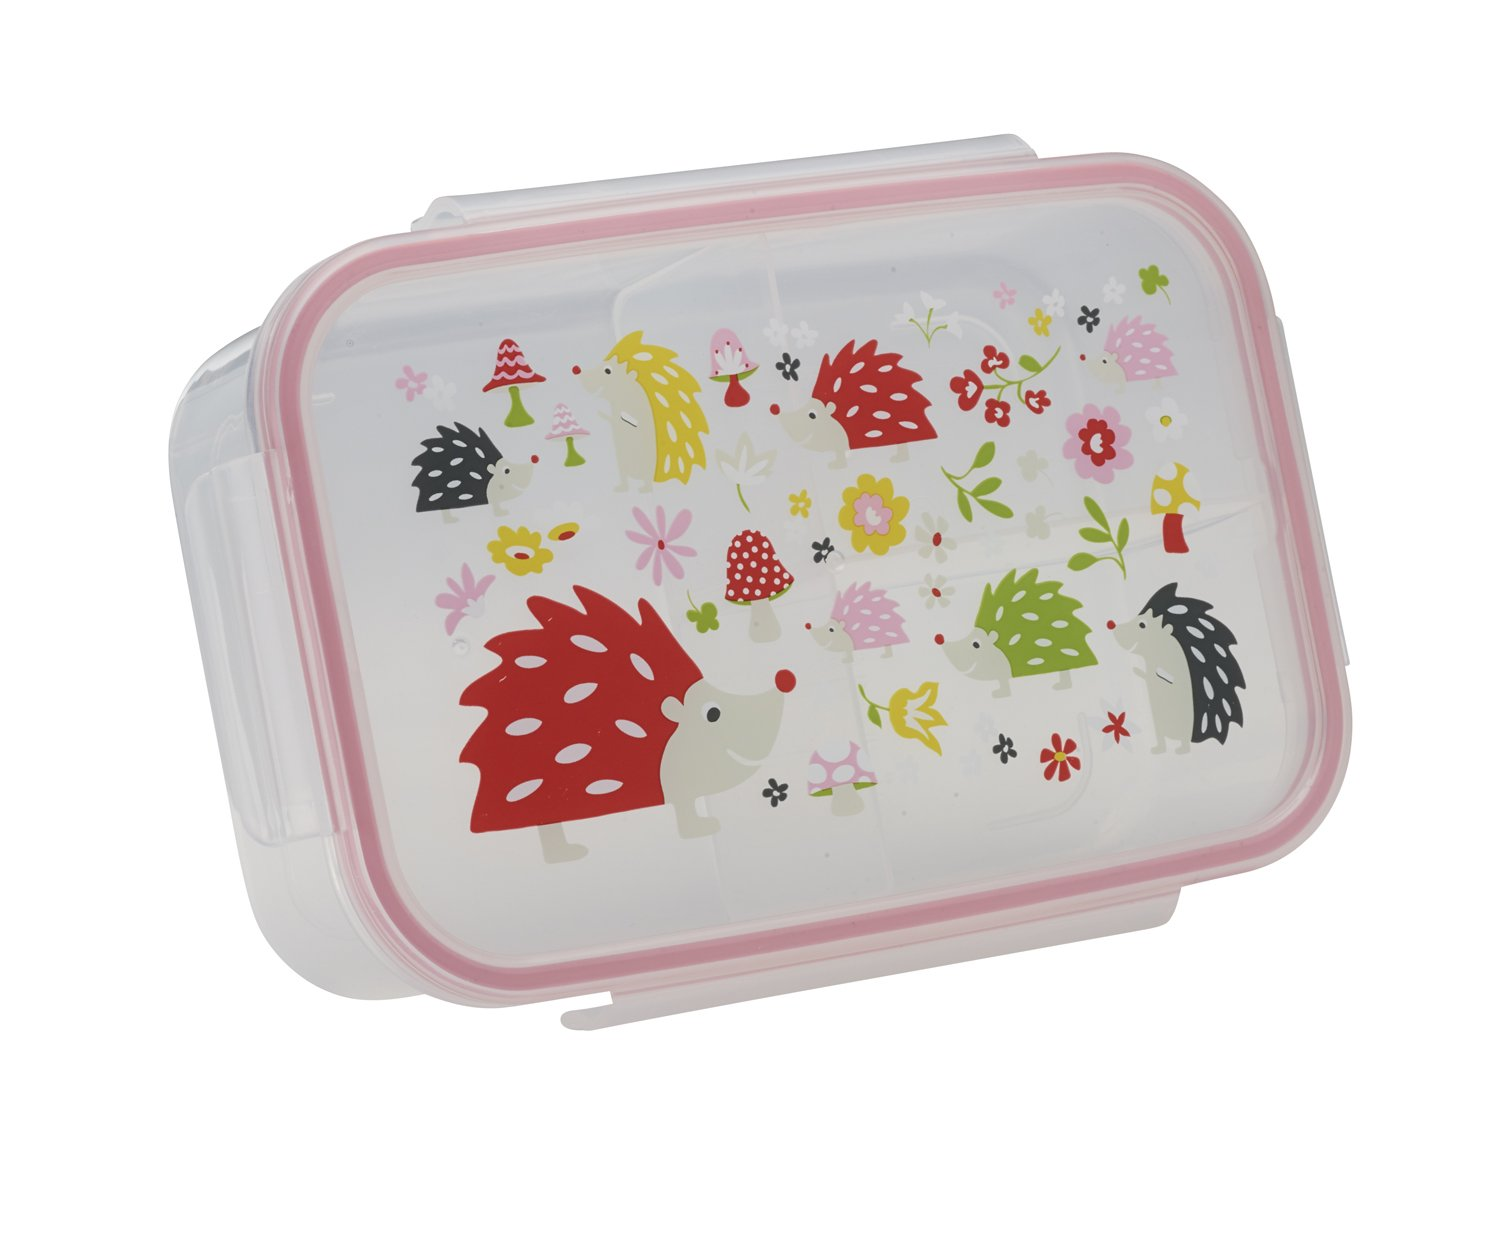 Sugarbooger Good Lunch Box, Ocean A1071